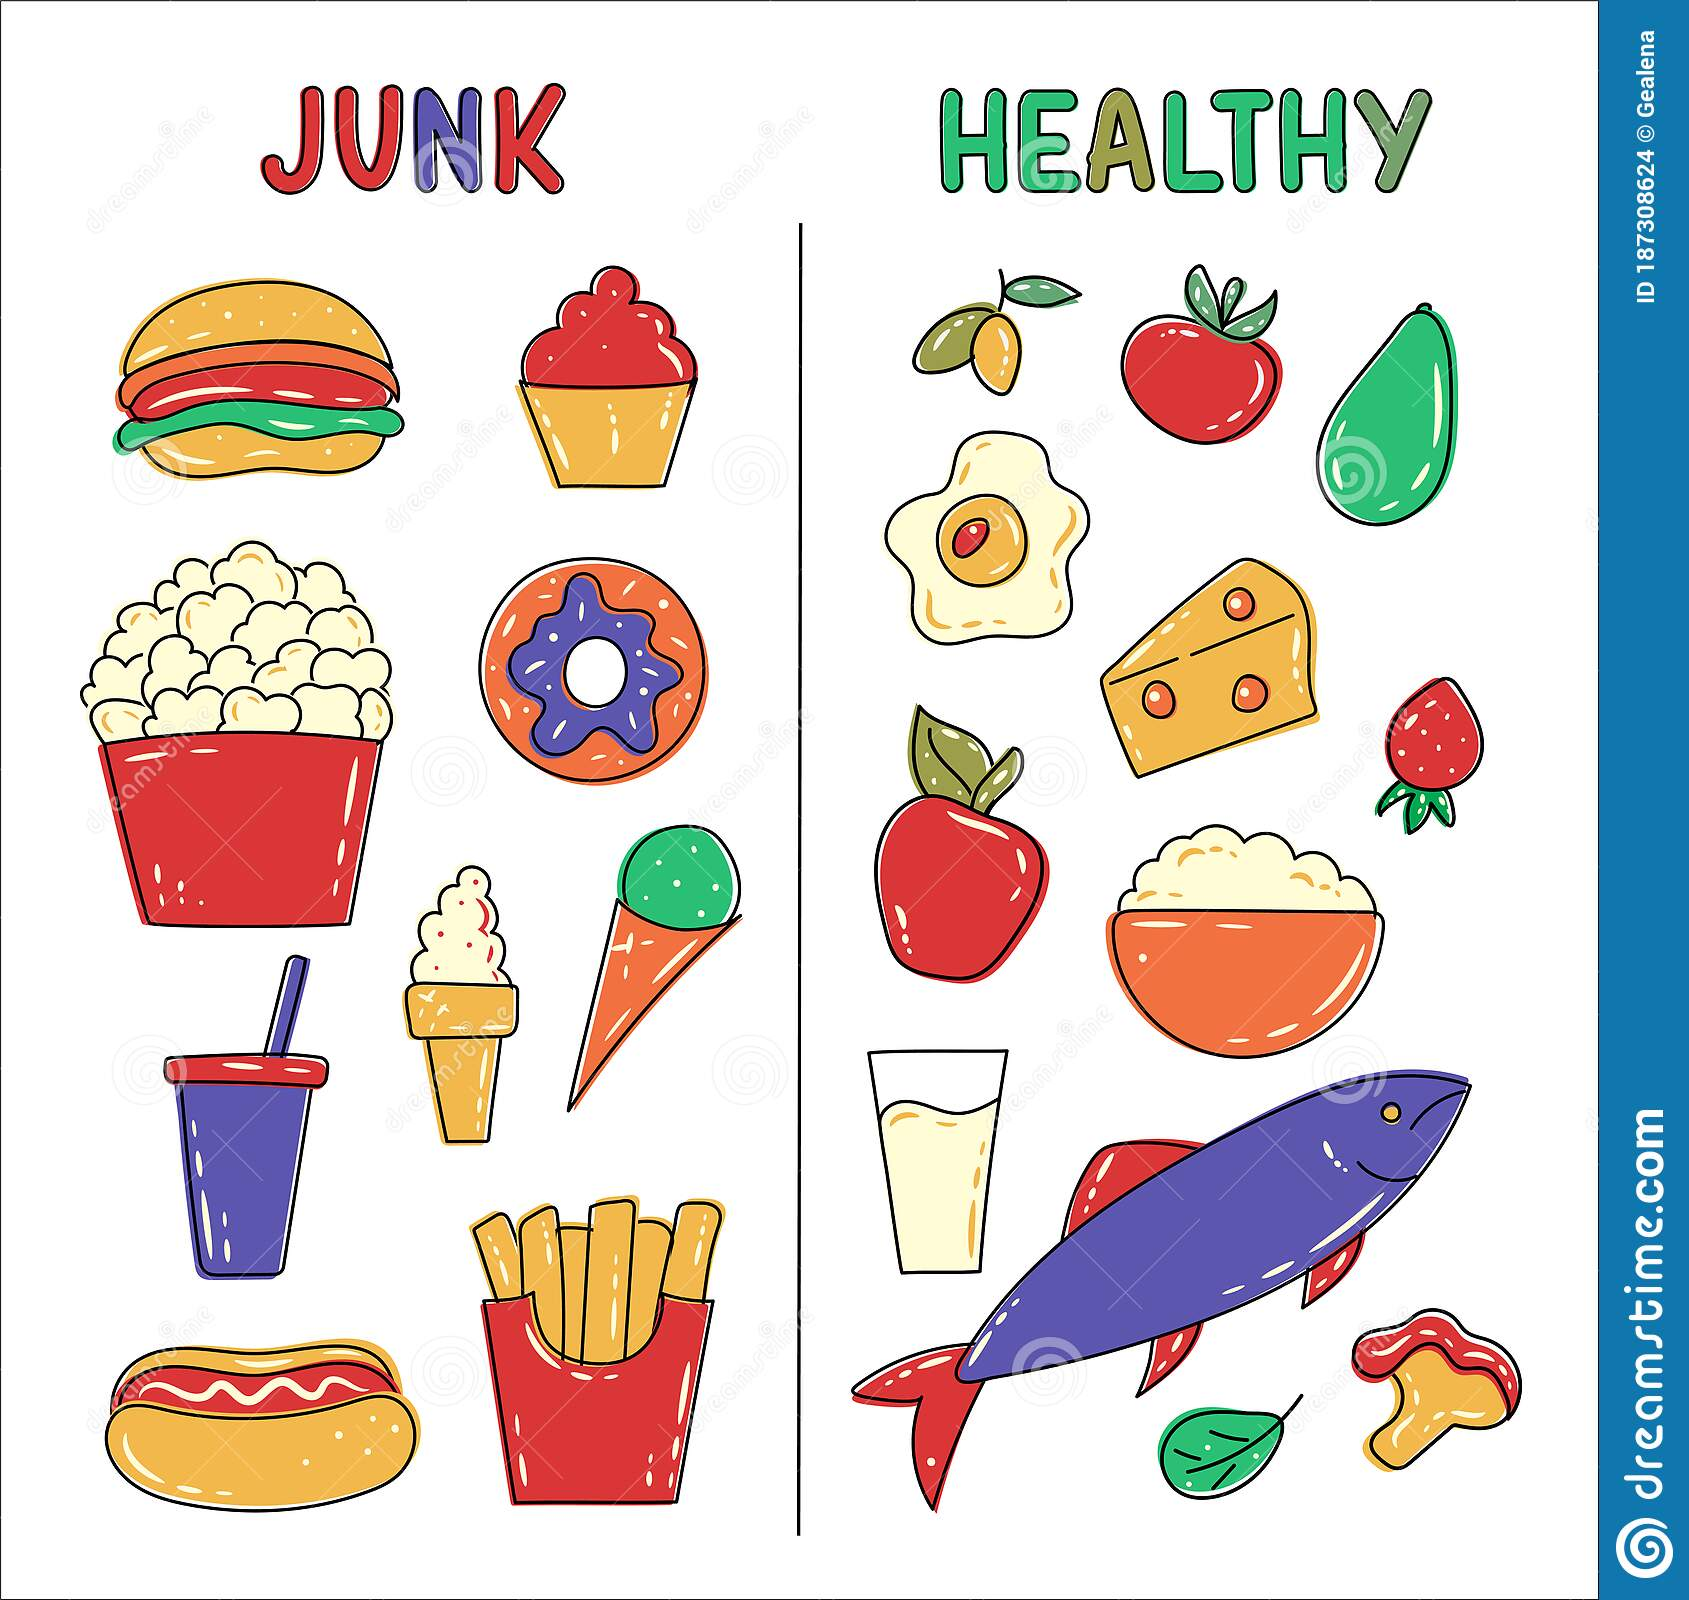 Healthy And Junk Unhealthy Food Fish Cottage Cheese Milk Fruits And Vegetables Vs Popcorn Sweets And Burgers Fastfood Vs Stock Vector Illustration Of Diet Meal 187308624